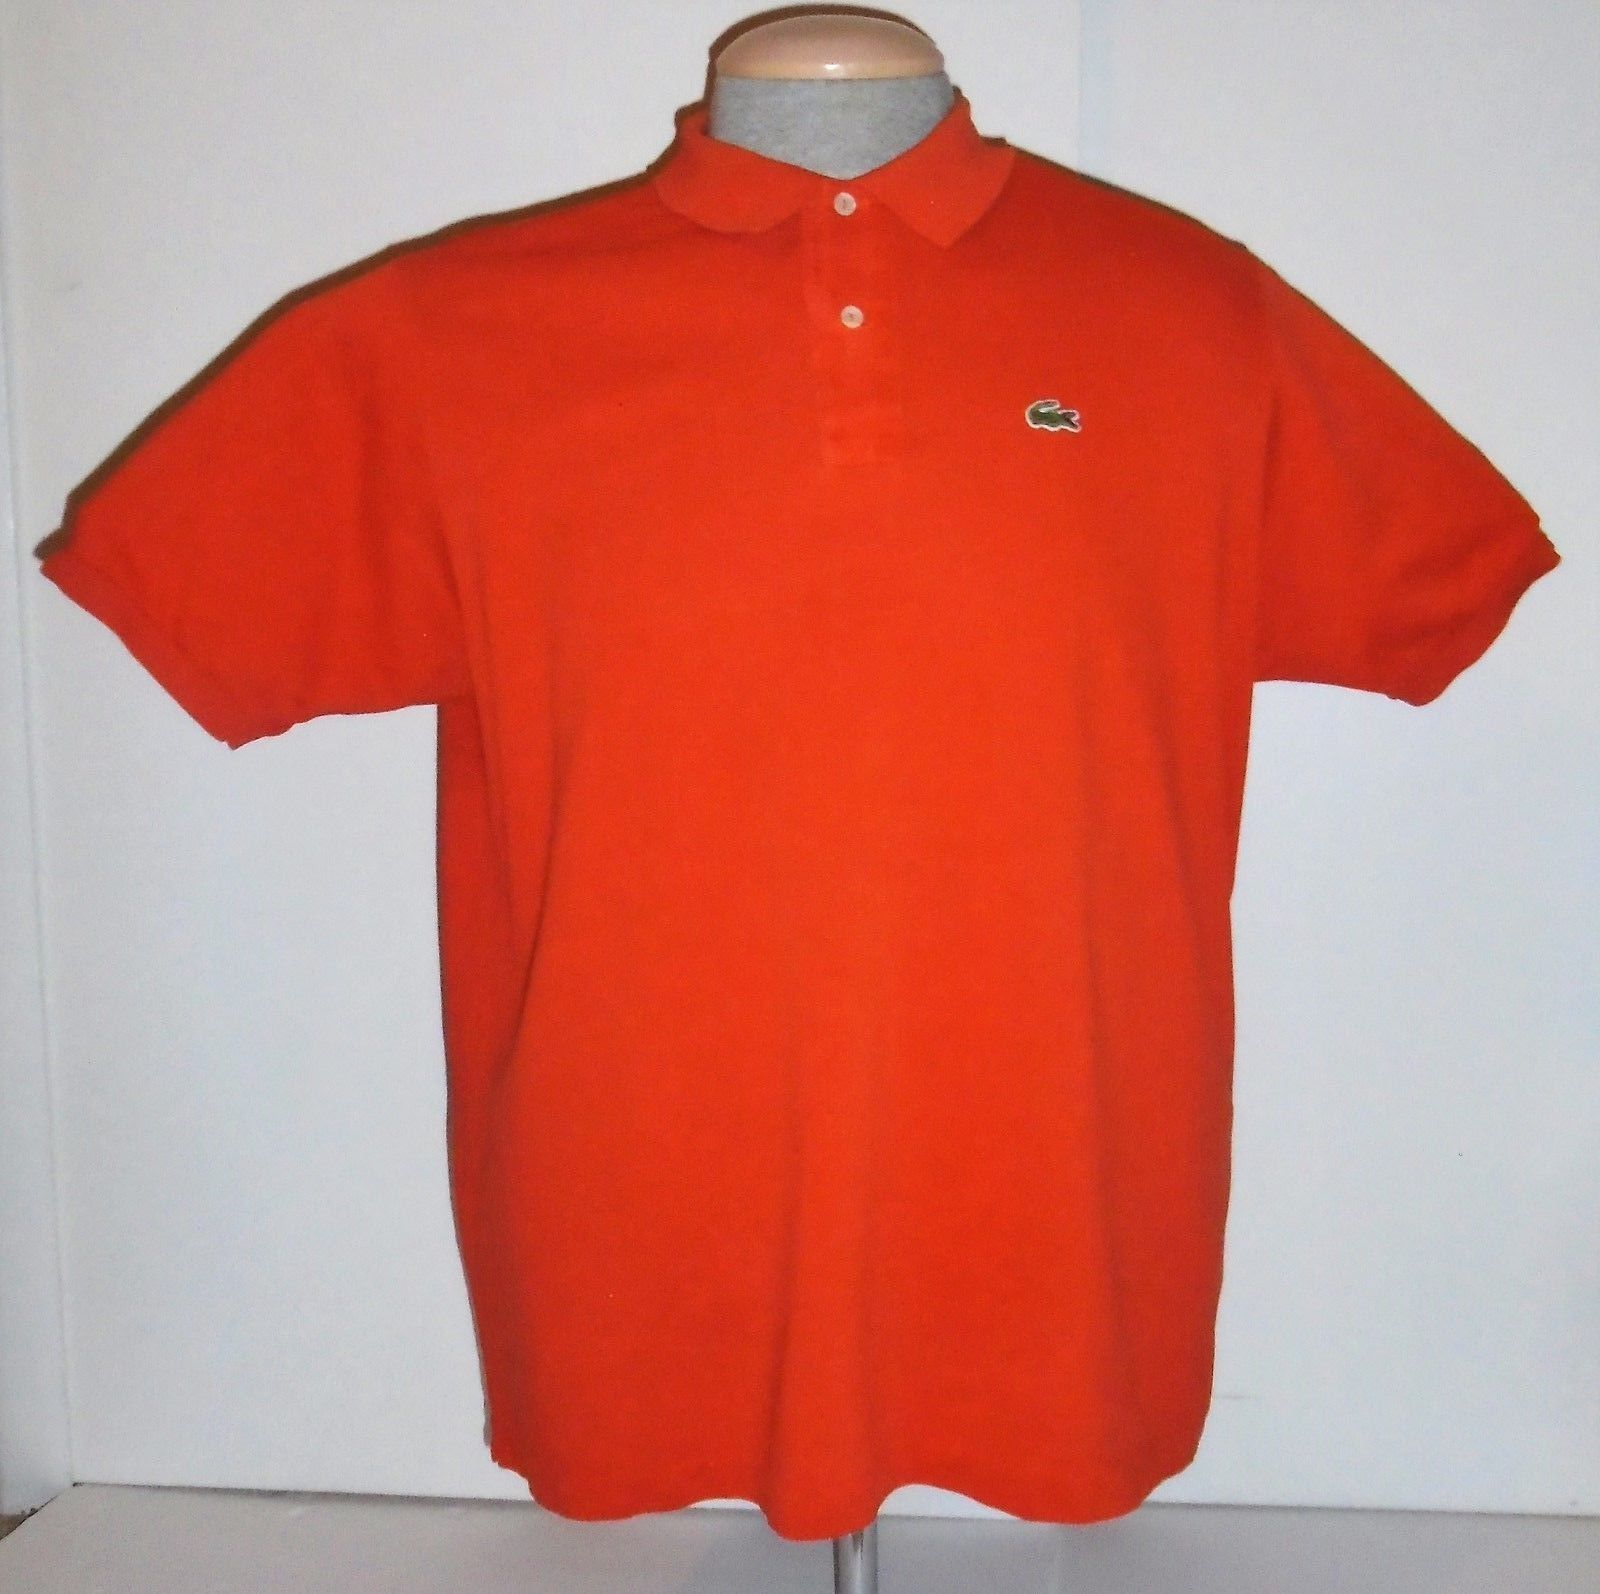 Vintage chemise lacoste made in france gator logo orange polo shirt vintage chemise lacoste made in france gator logo orange polo shirt mens 7 sciox Images